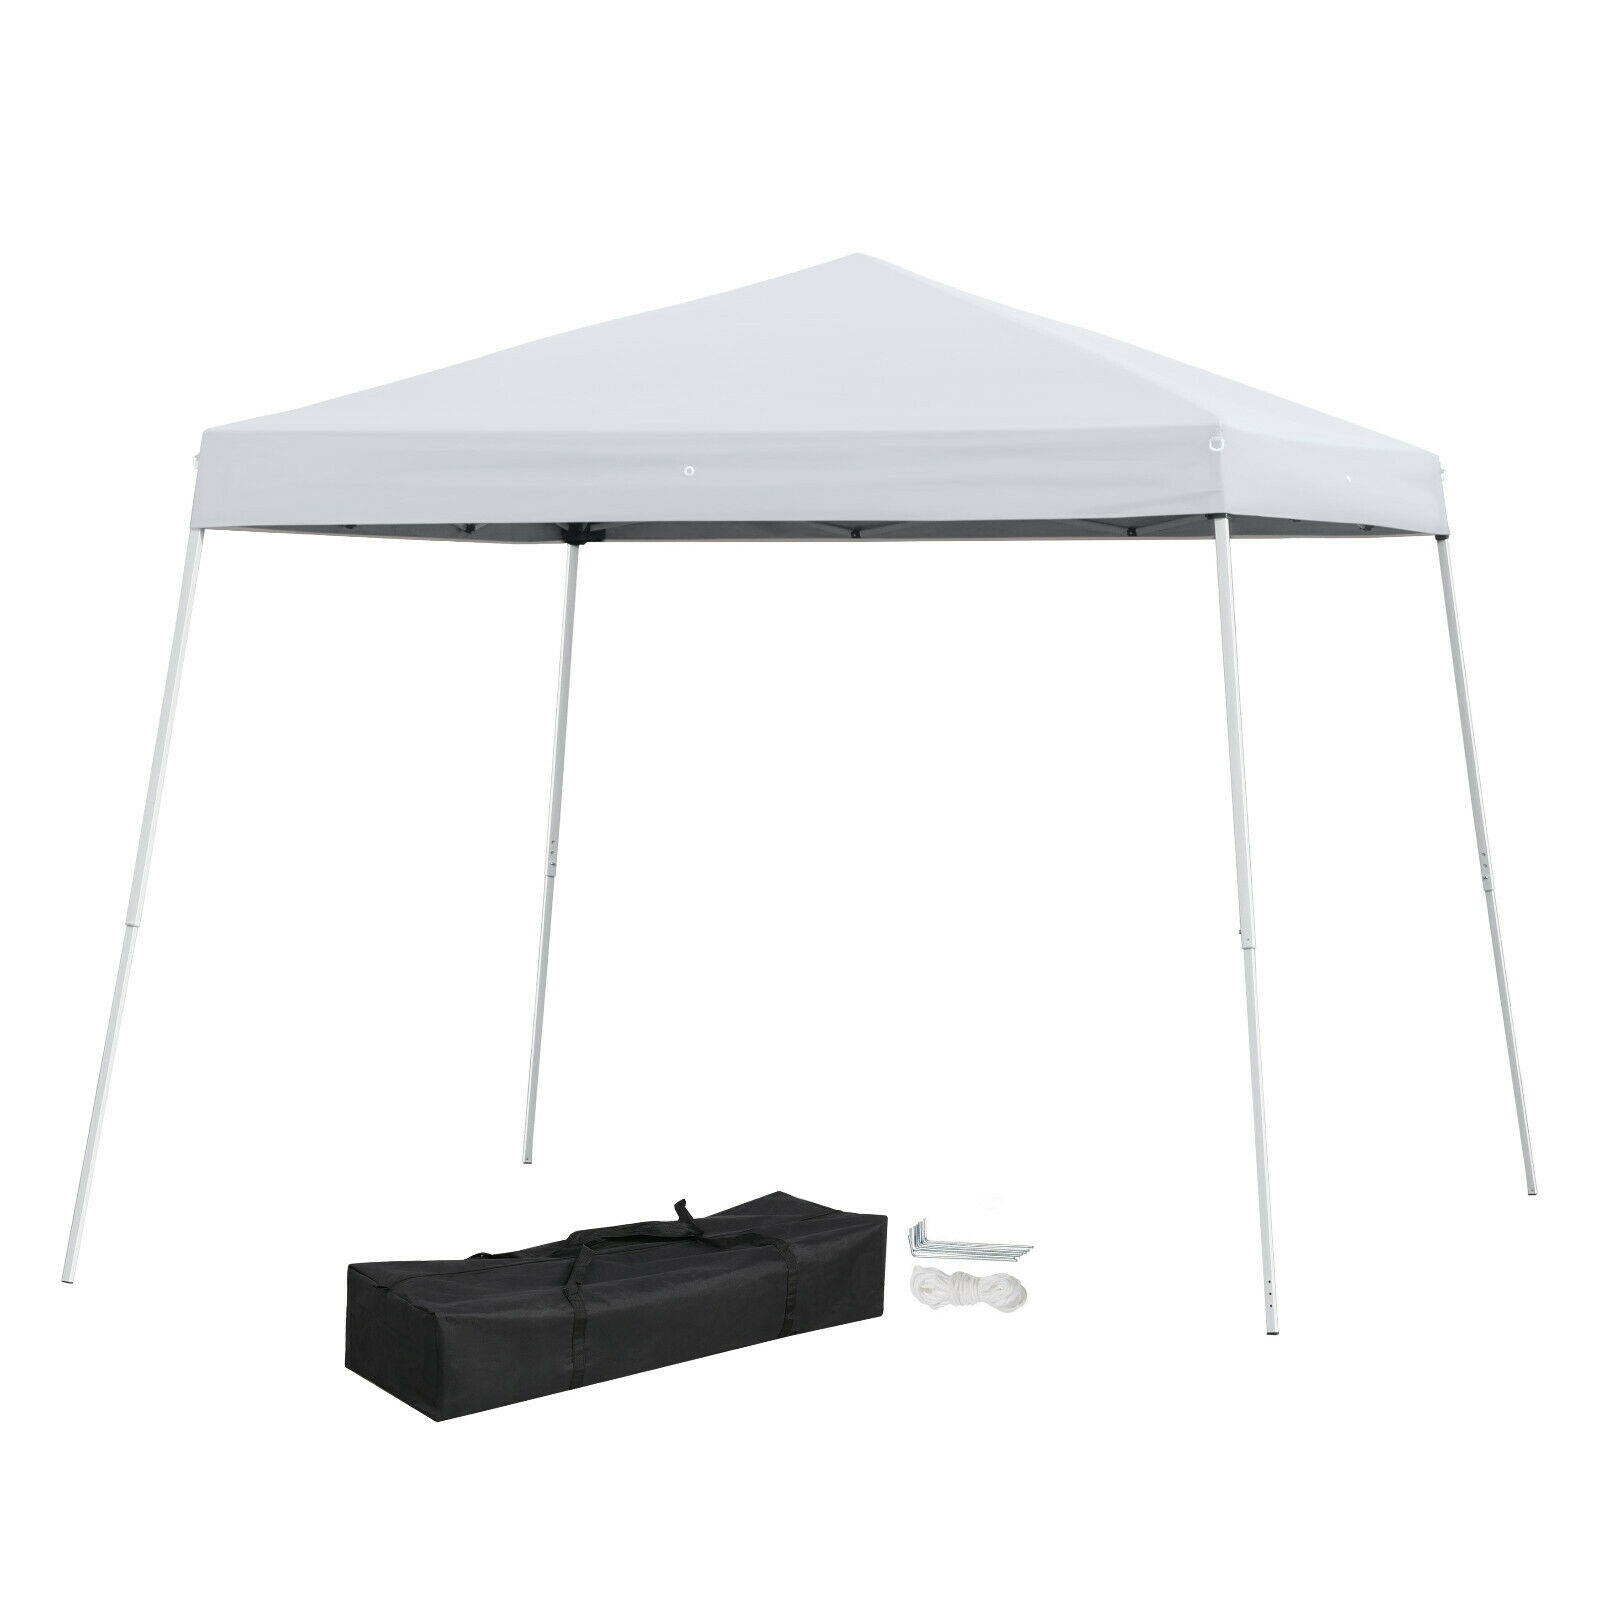 details about 10x10 outdoor yard patio pop up folding canopy tent awning gazebo shade shelter